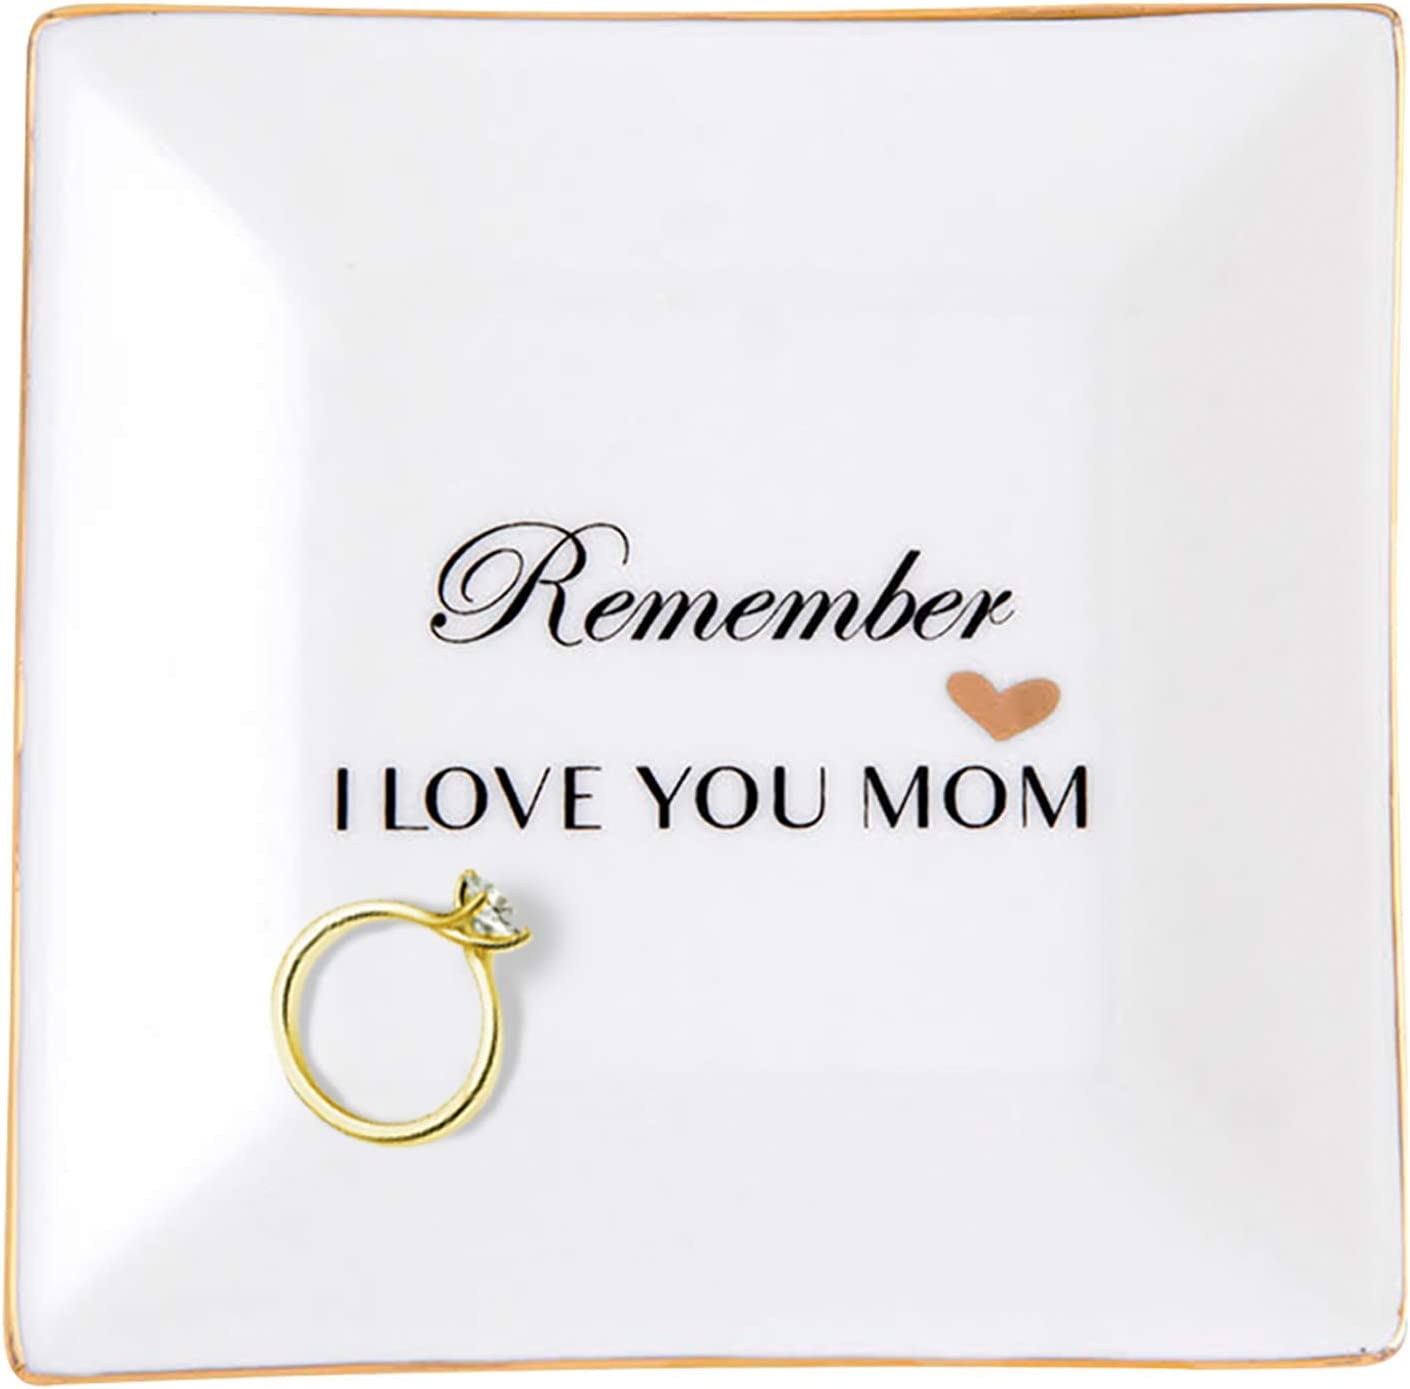 Birthday Gifts for Mom, Mothers Day Gifts for Mom from Daughter, Mom trinket dish, Mother In Law Gifts from Daughter In Law, Ceramic Dish with God Foil, Grandma or Grandmother Gifts, Presents for Mom